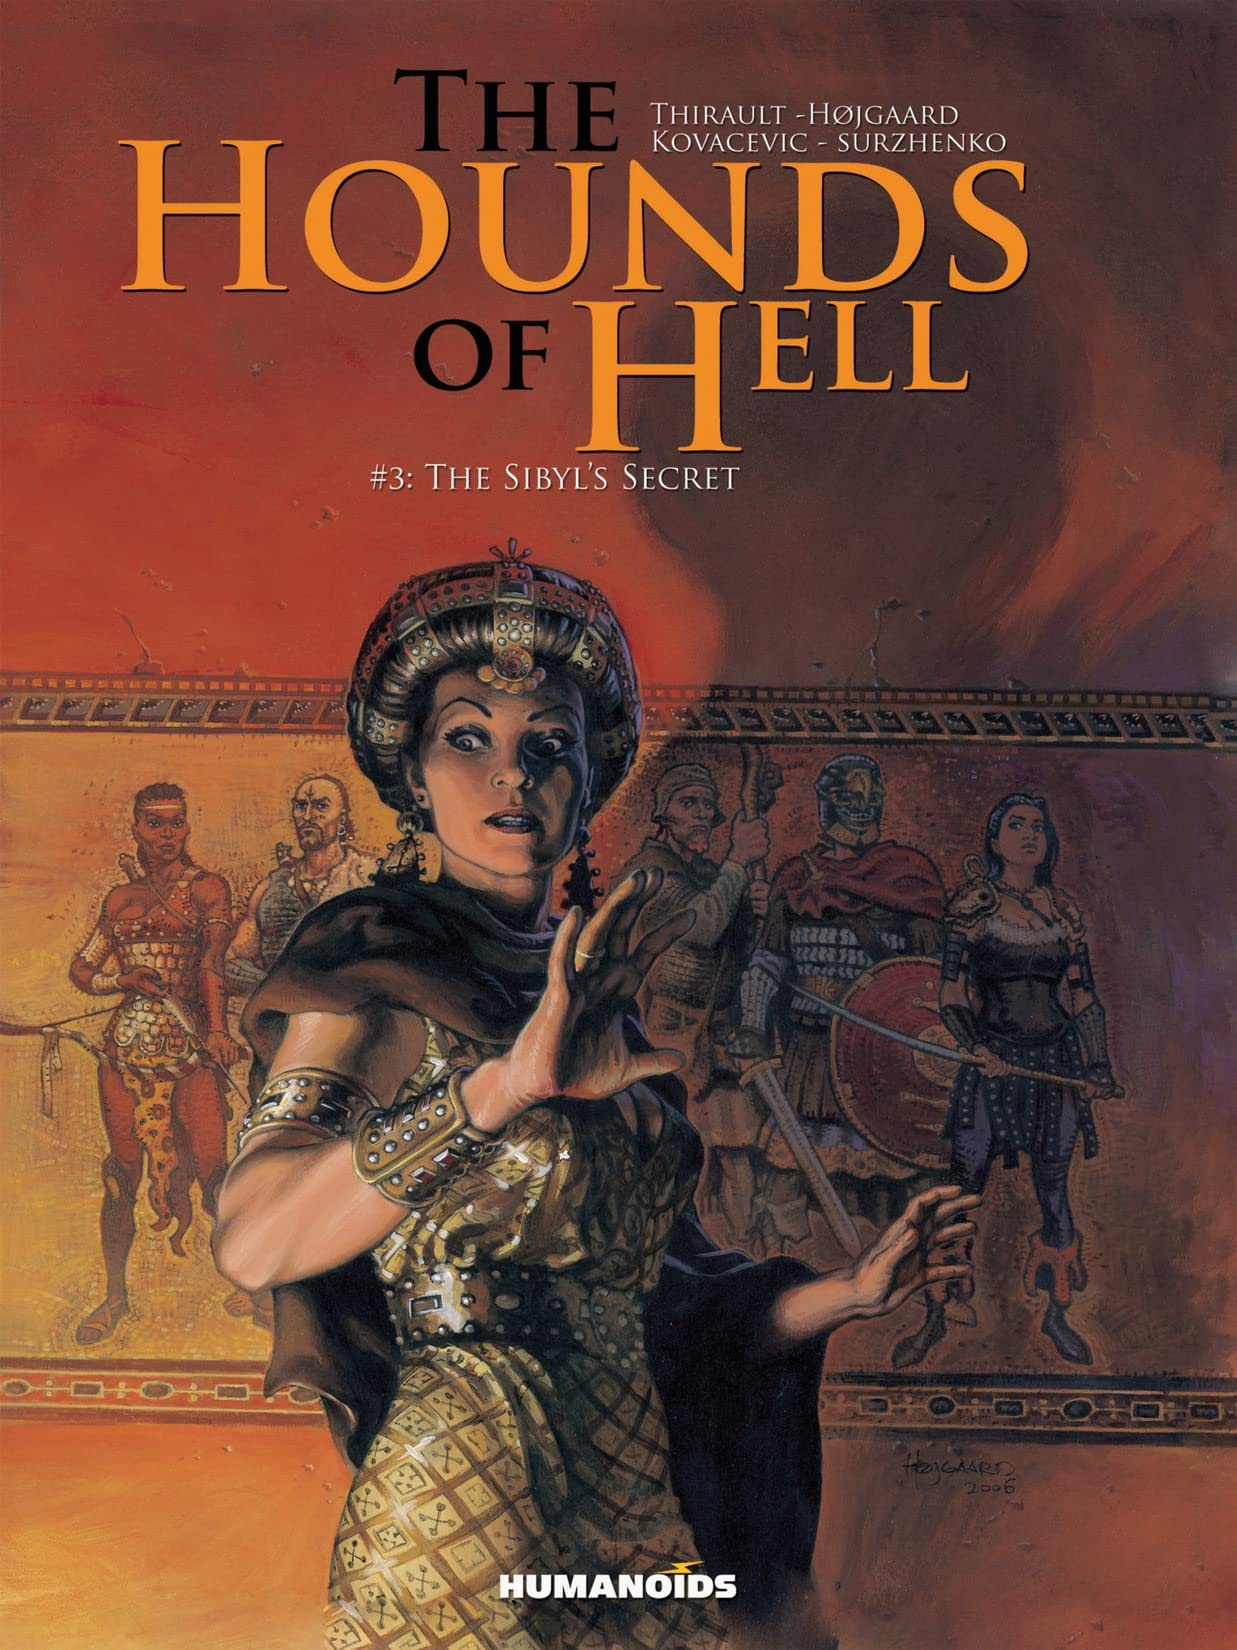 The Hounds of Hell Vol. 3: The Sibyl's Secret